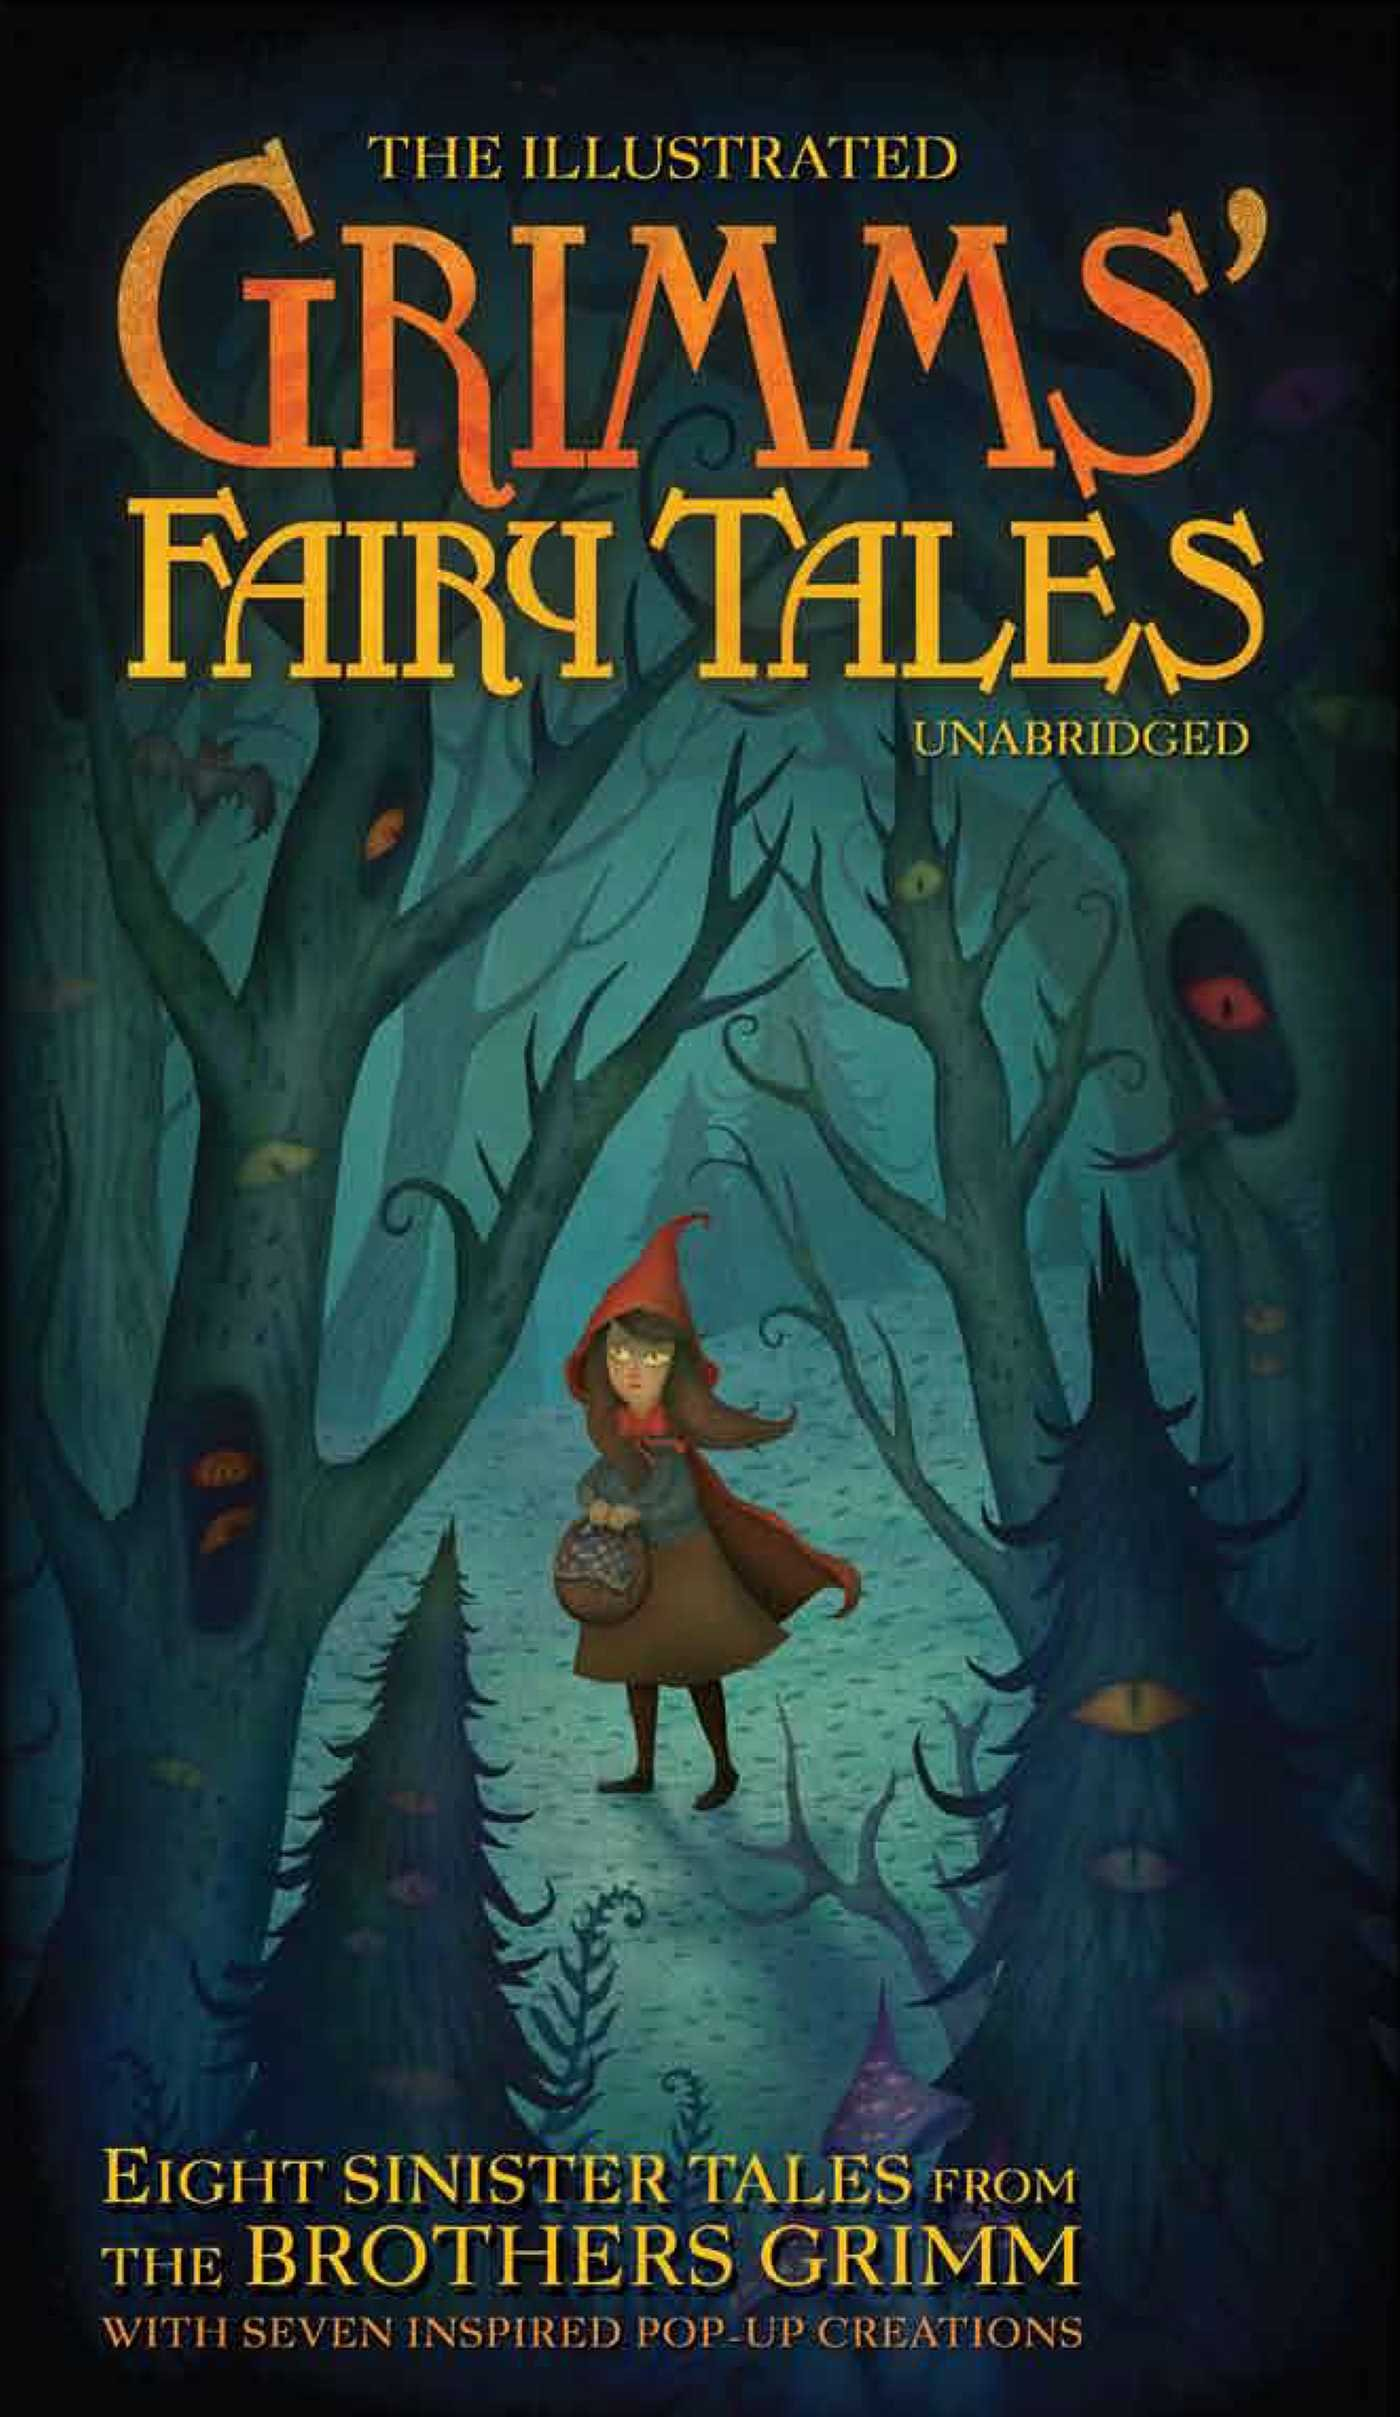 A Selection of Grimms' Fairy Tales